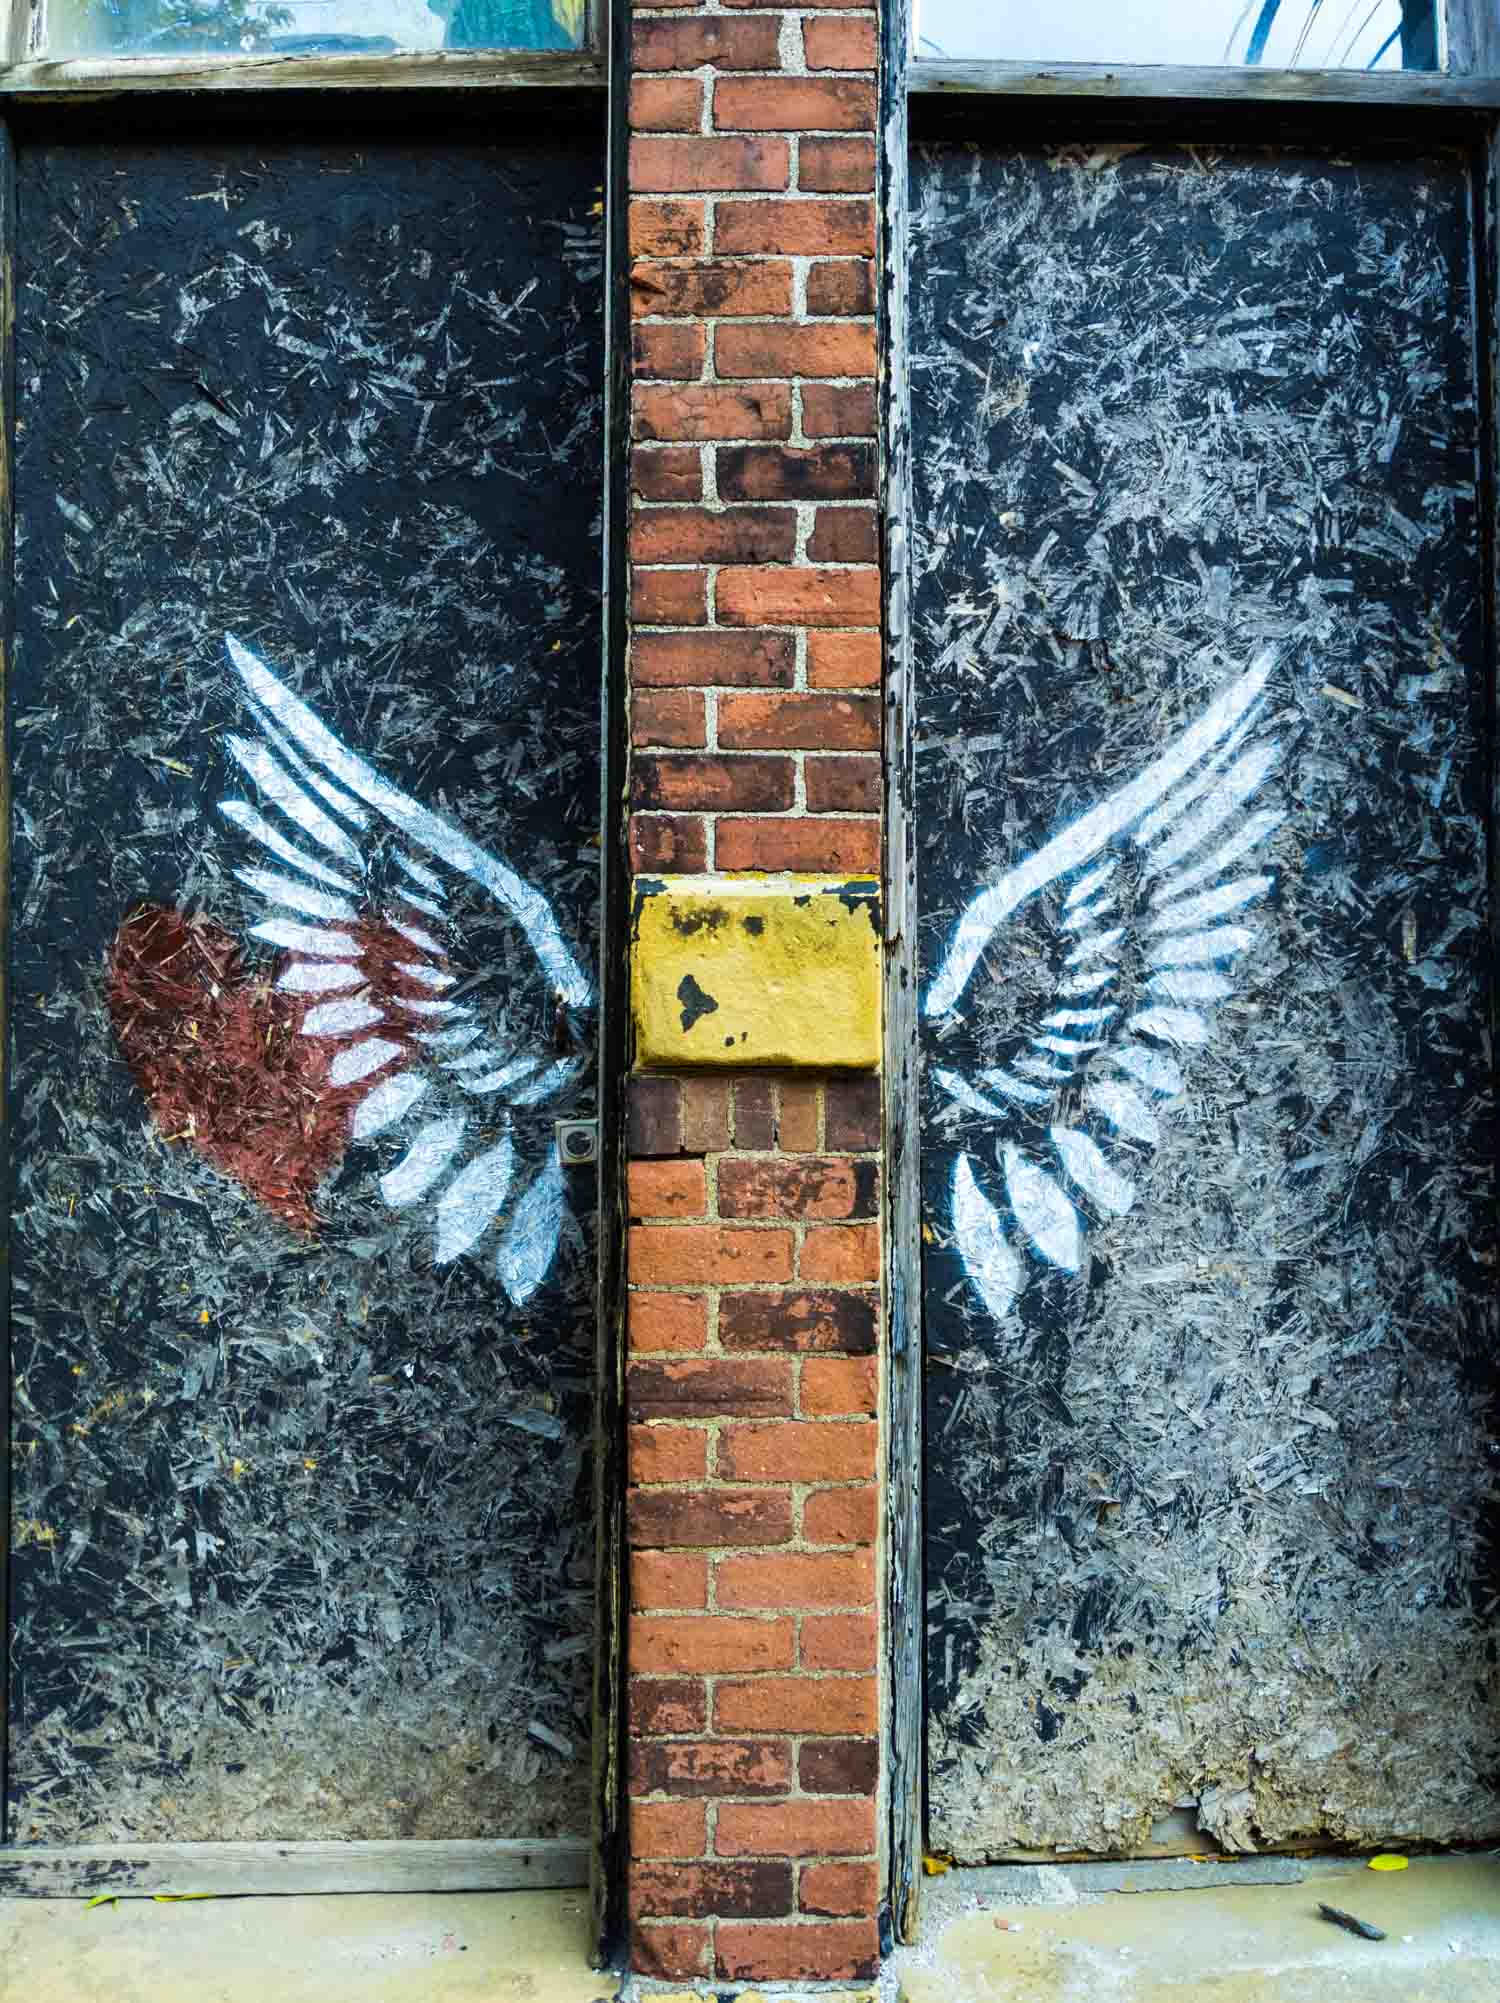 Stenciled wings on a building in restoration.